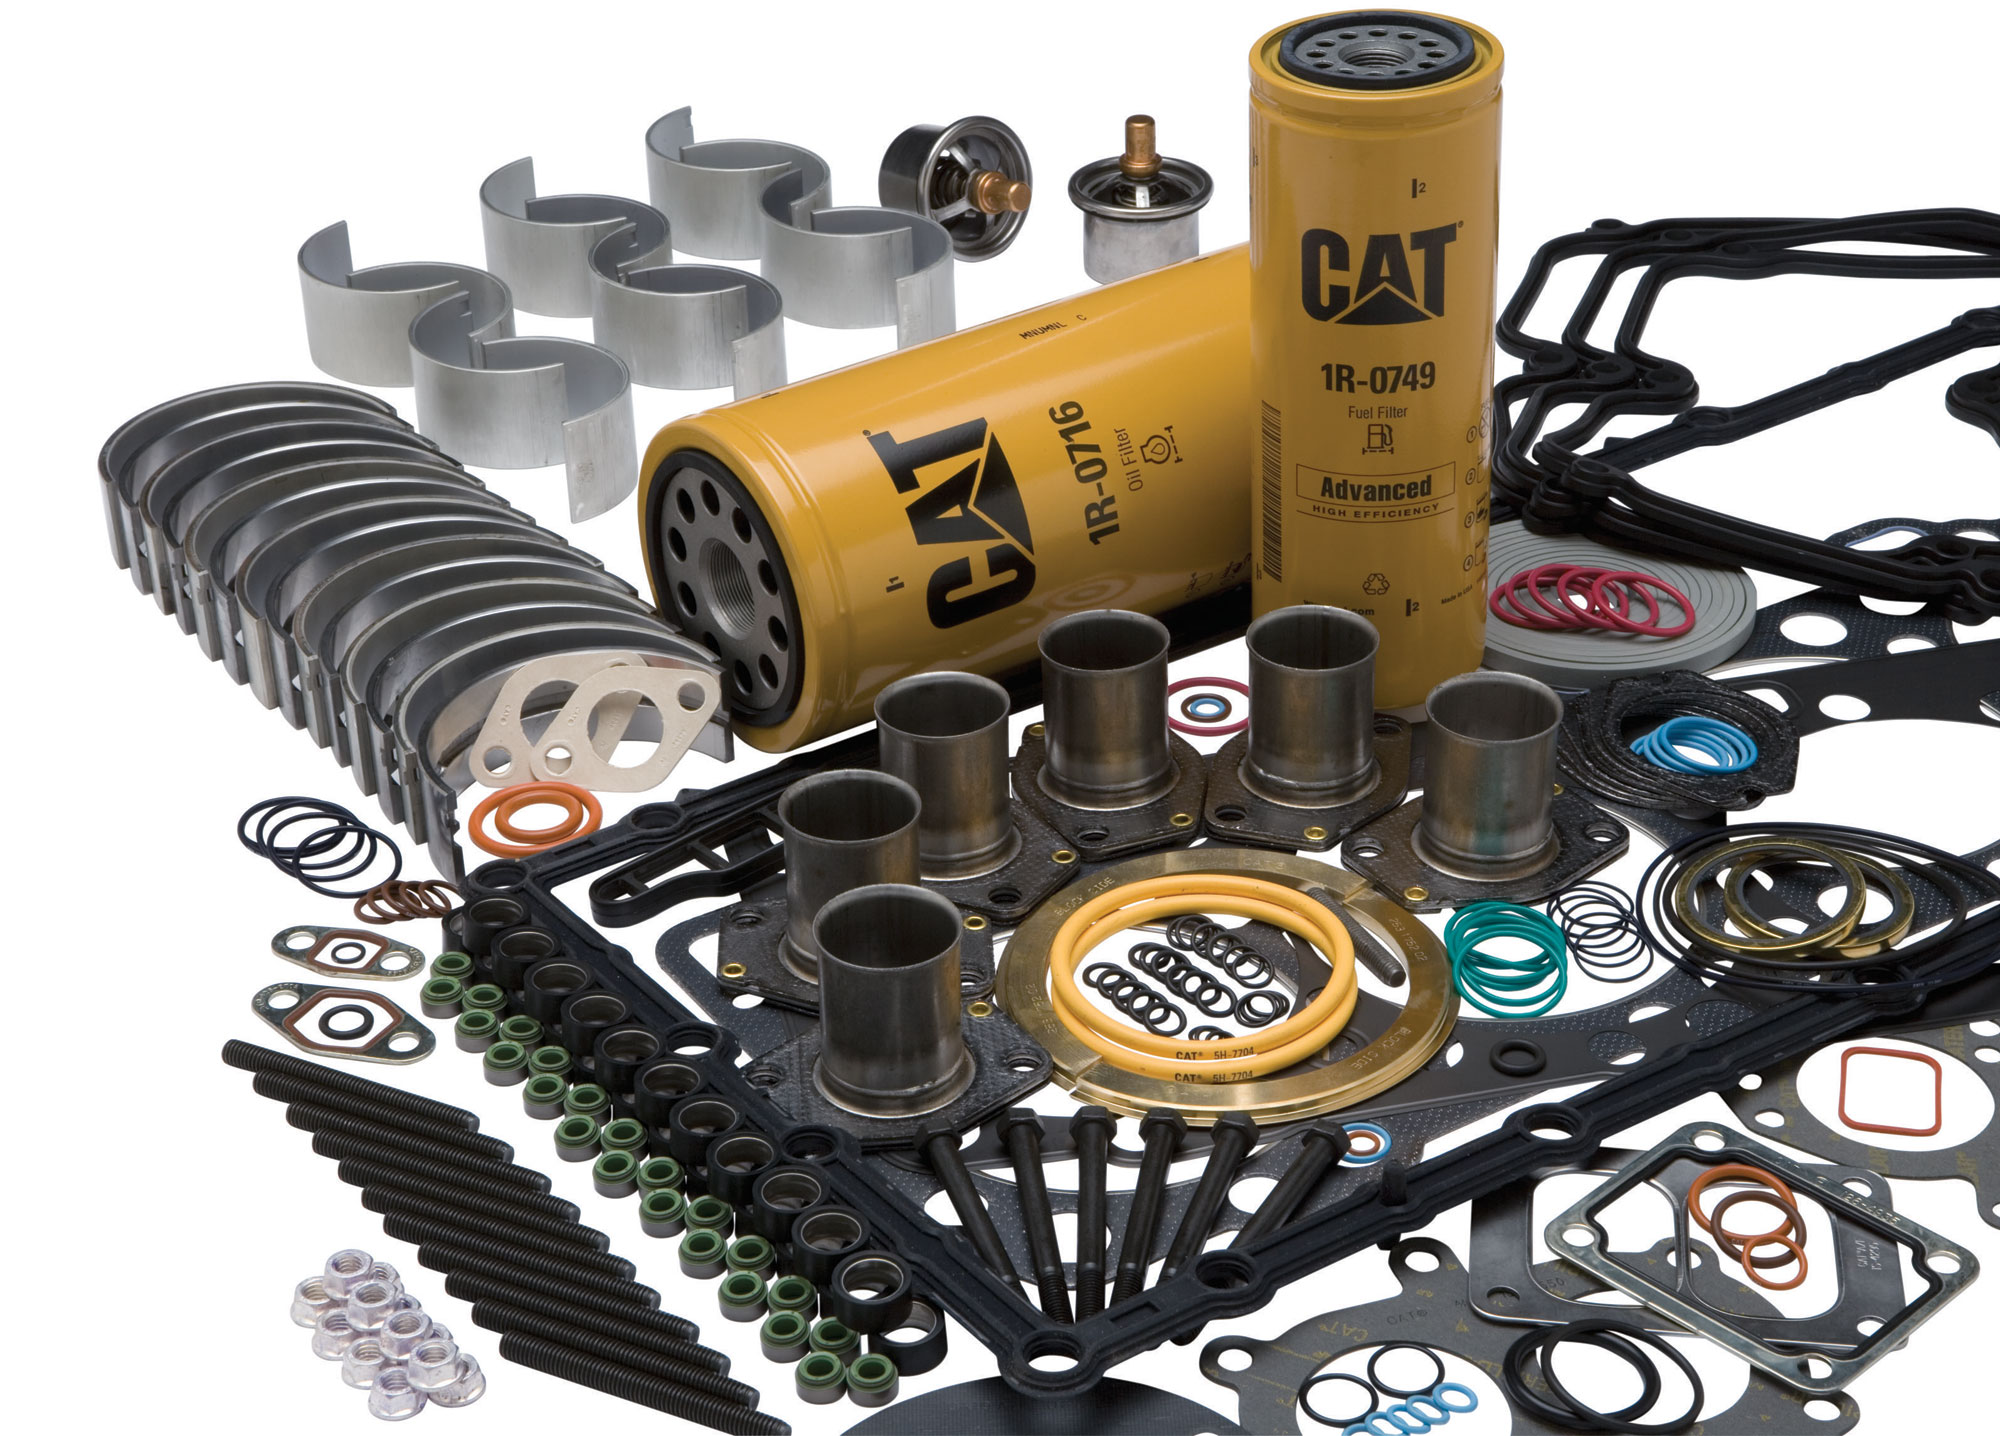 reduced pricing on Cat® parts